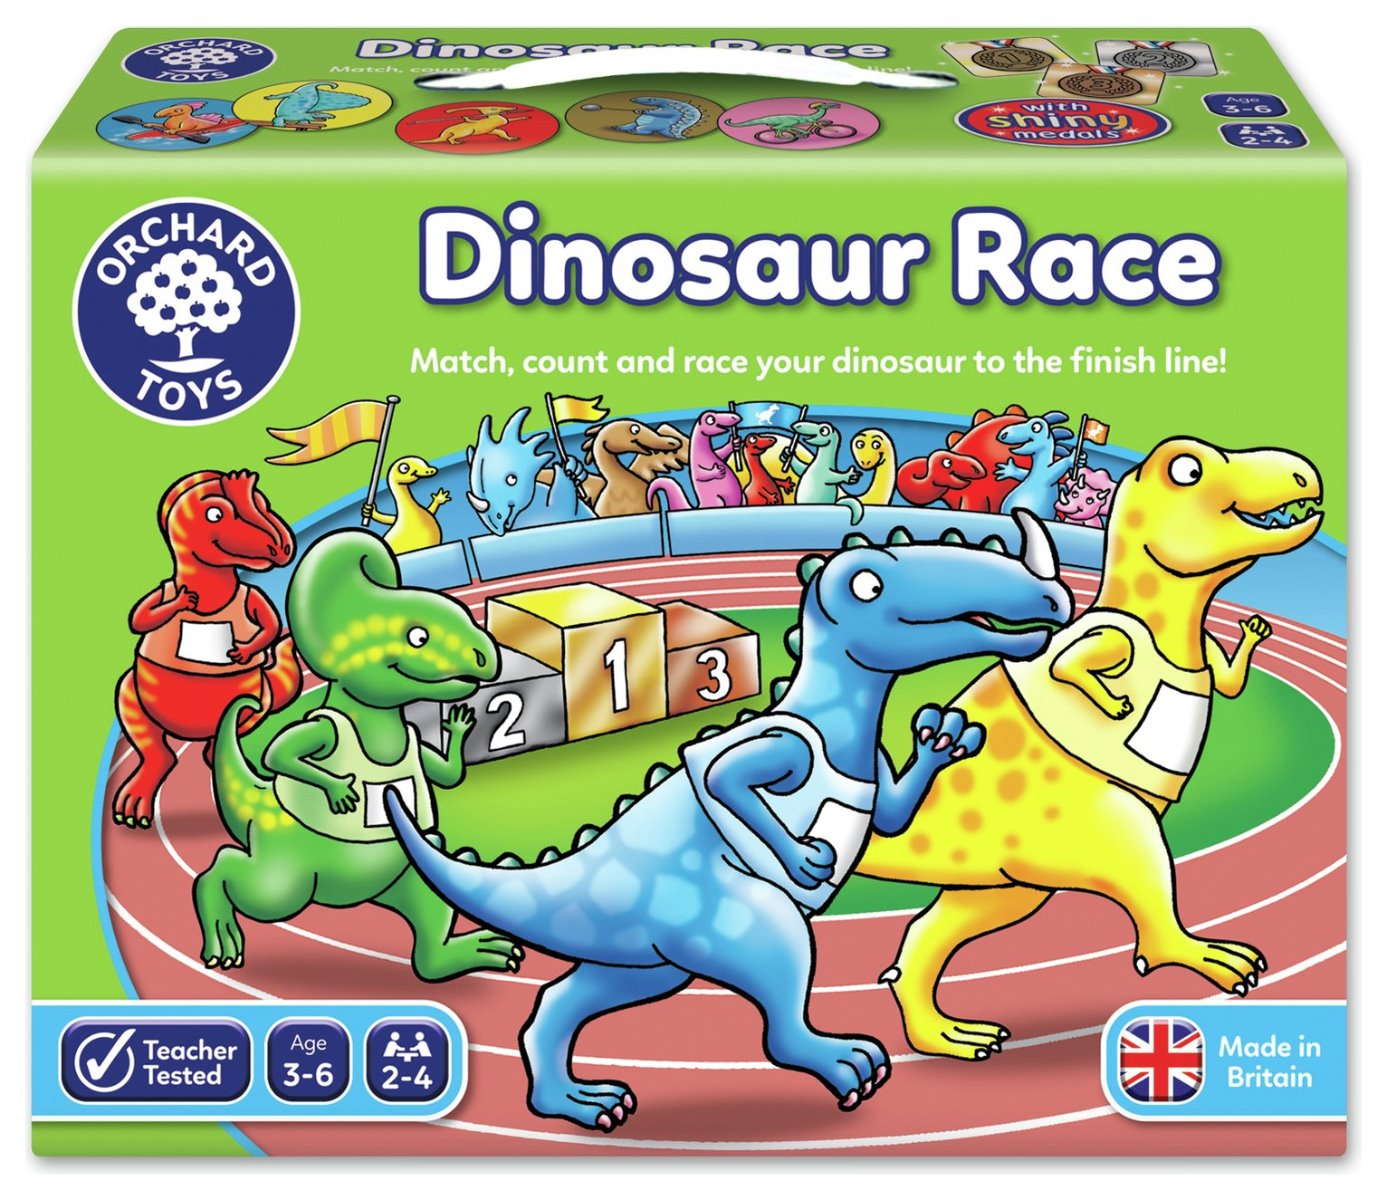 Orchard Toys Dinosaur Race educational game box